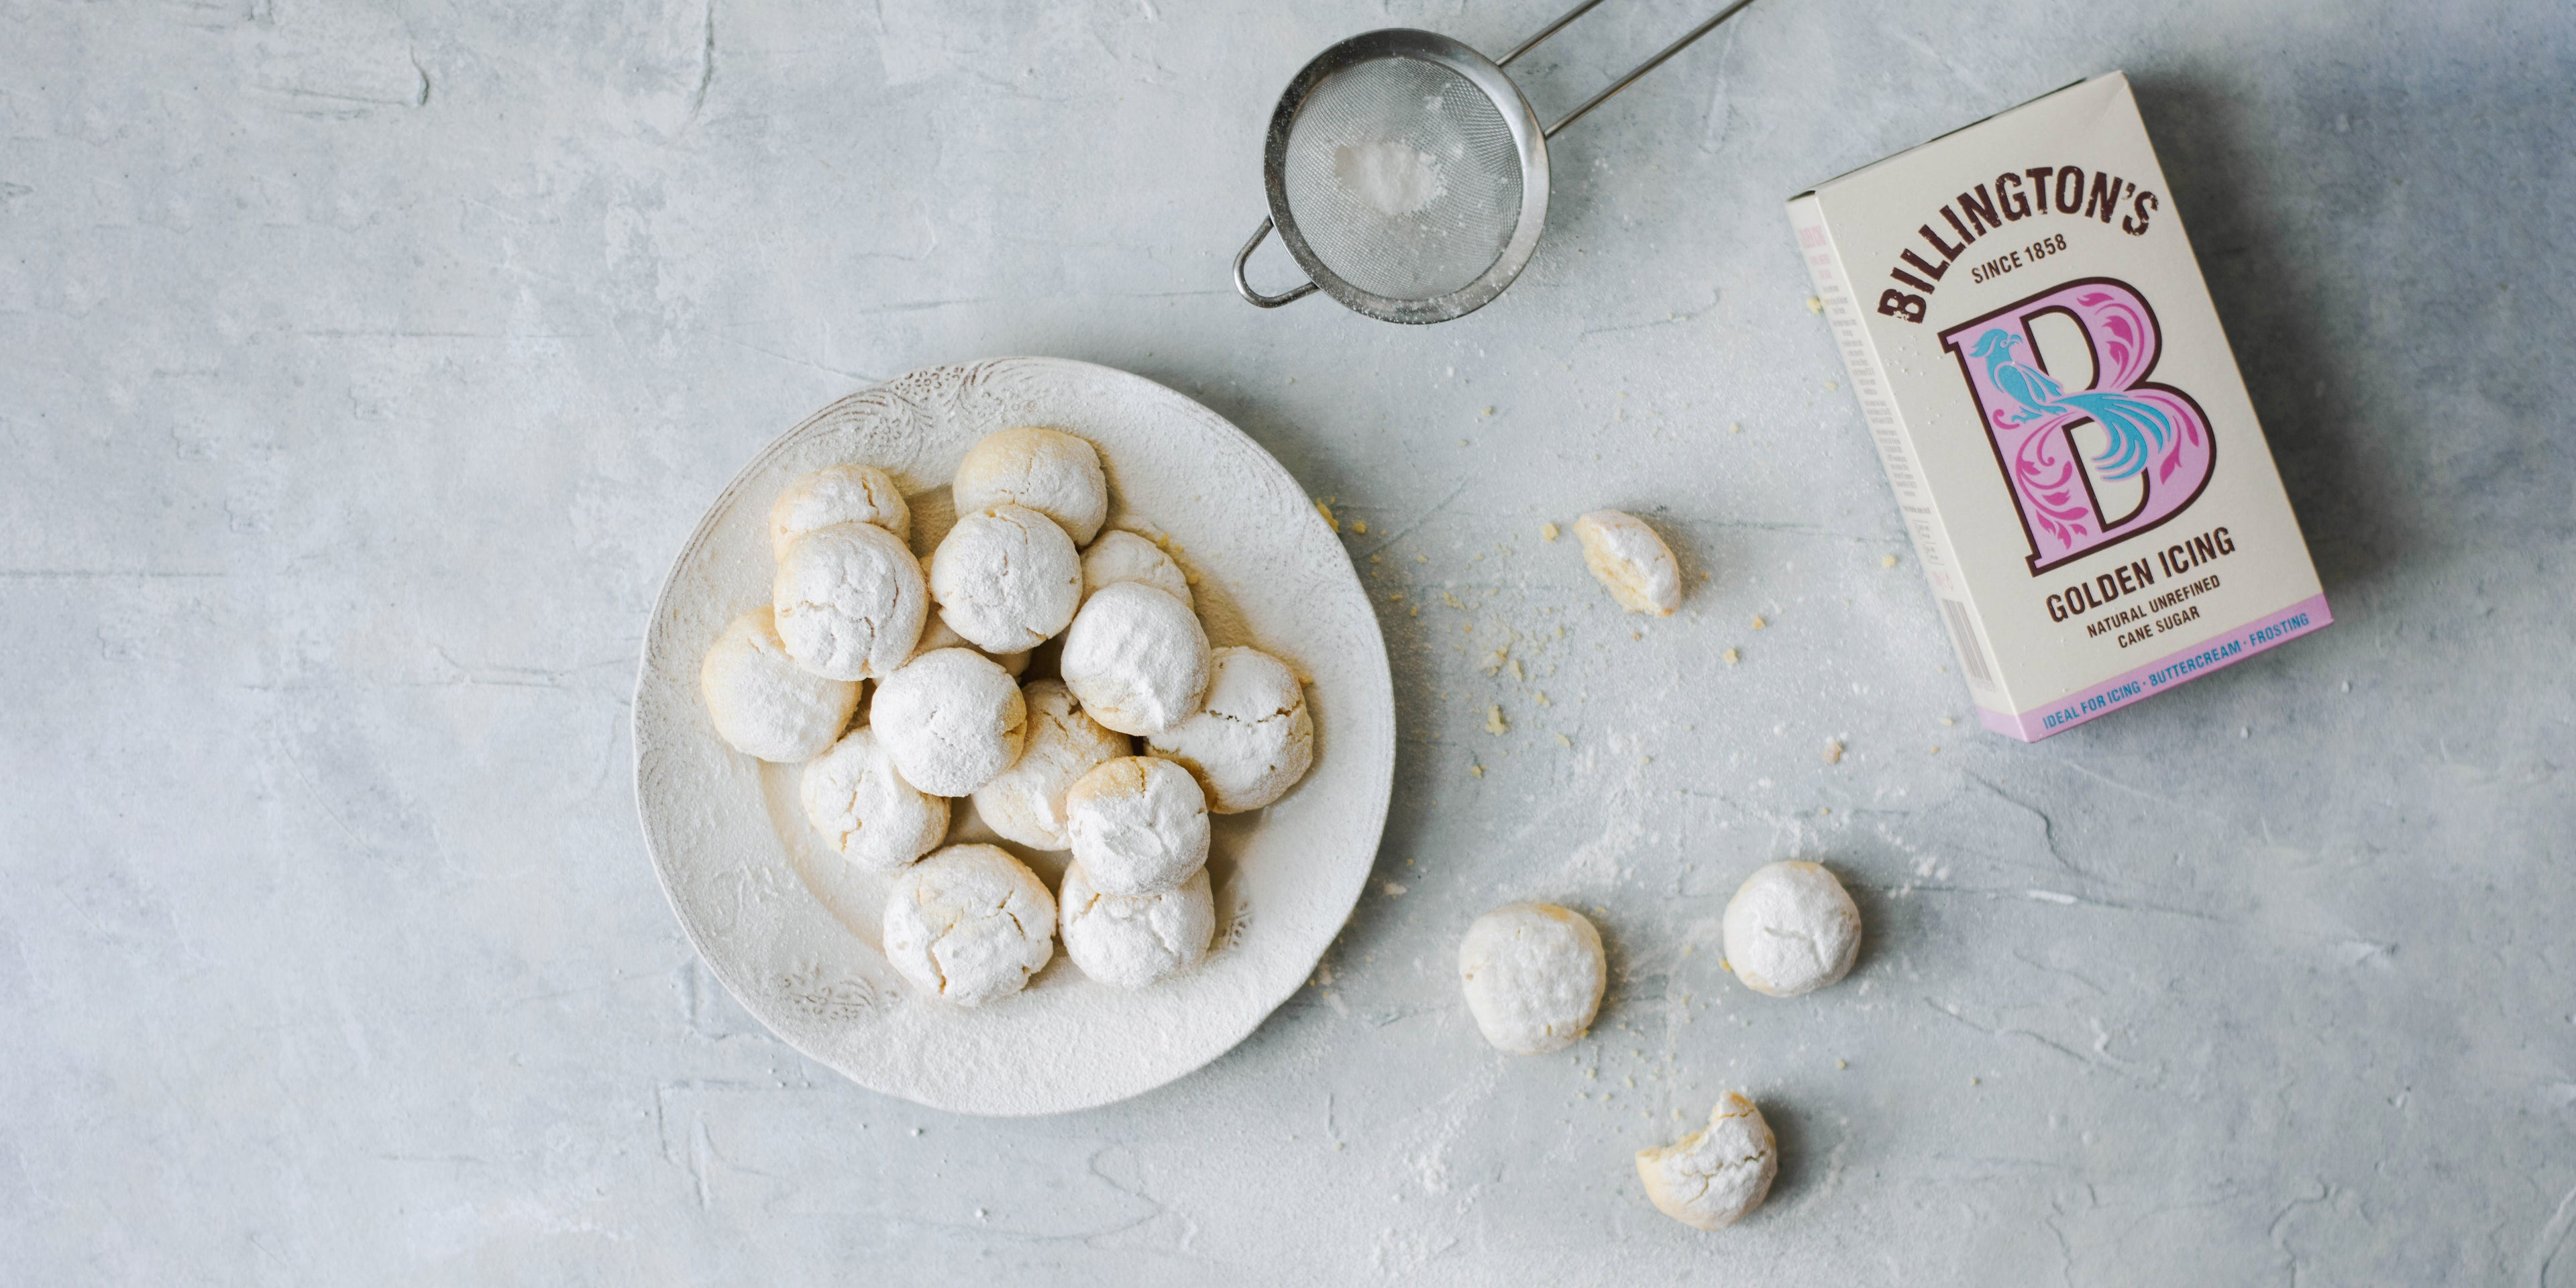 Kahk Eid on a plate with sieve and box of Billington's golden icing sugar